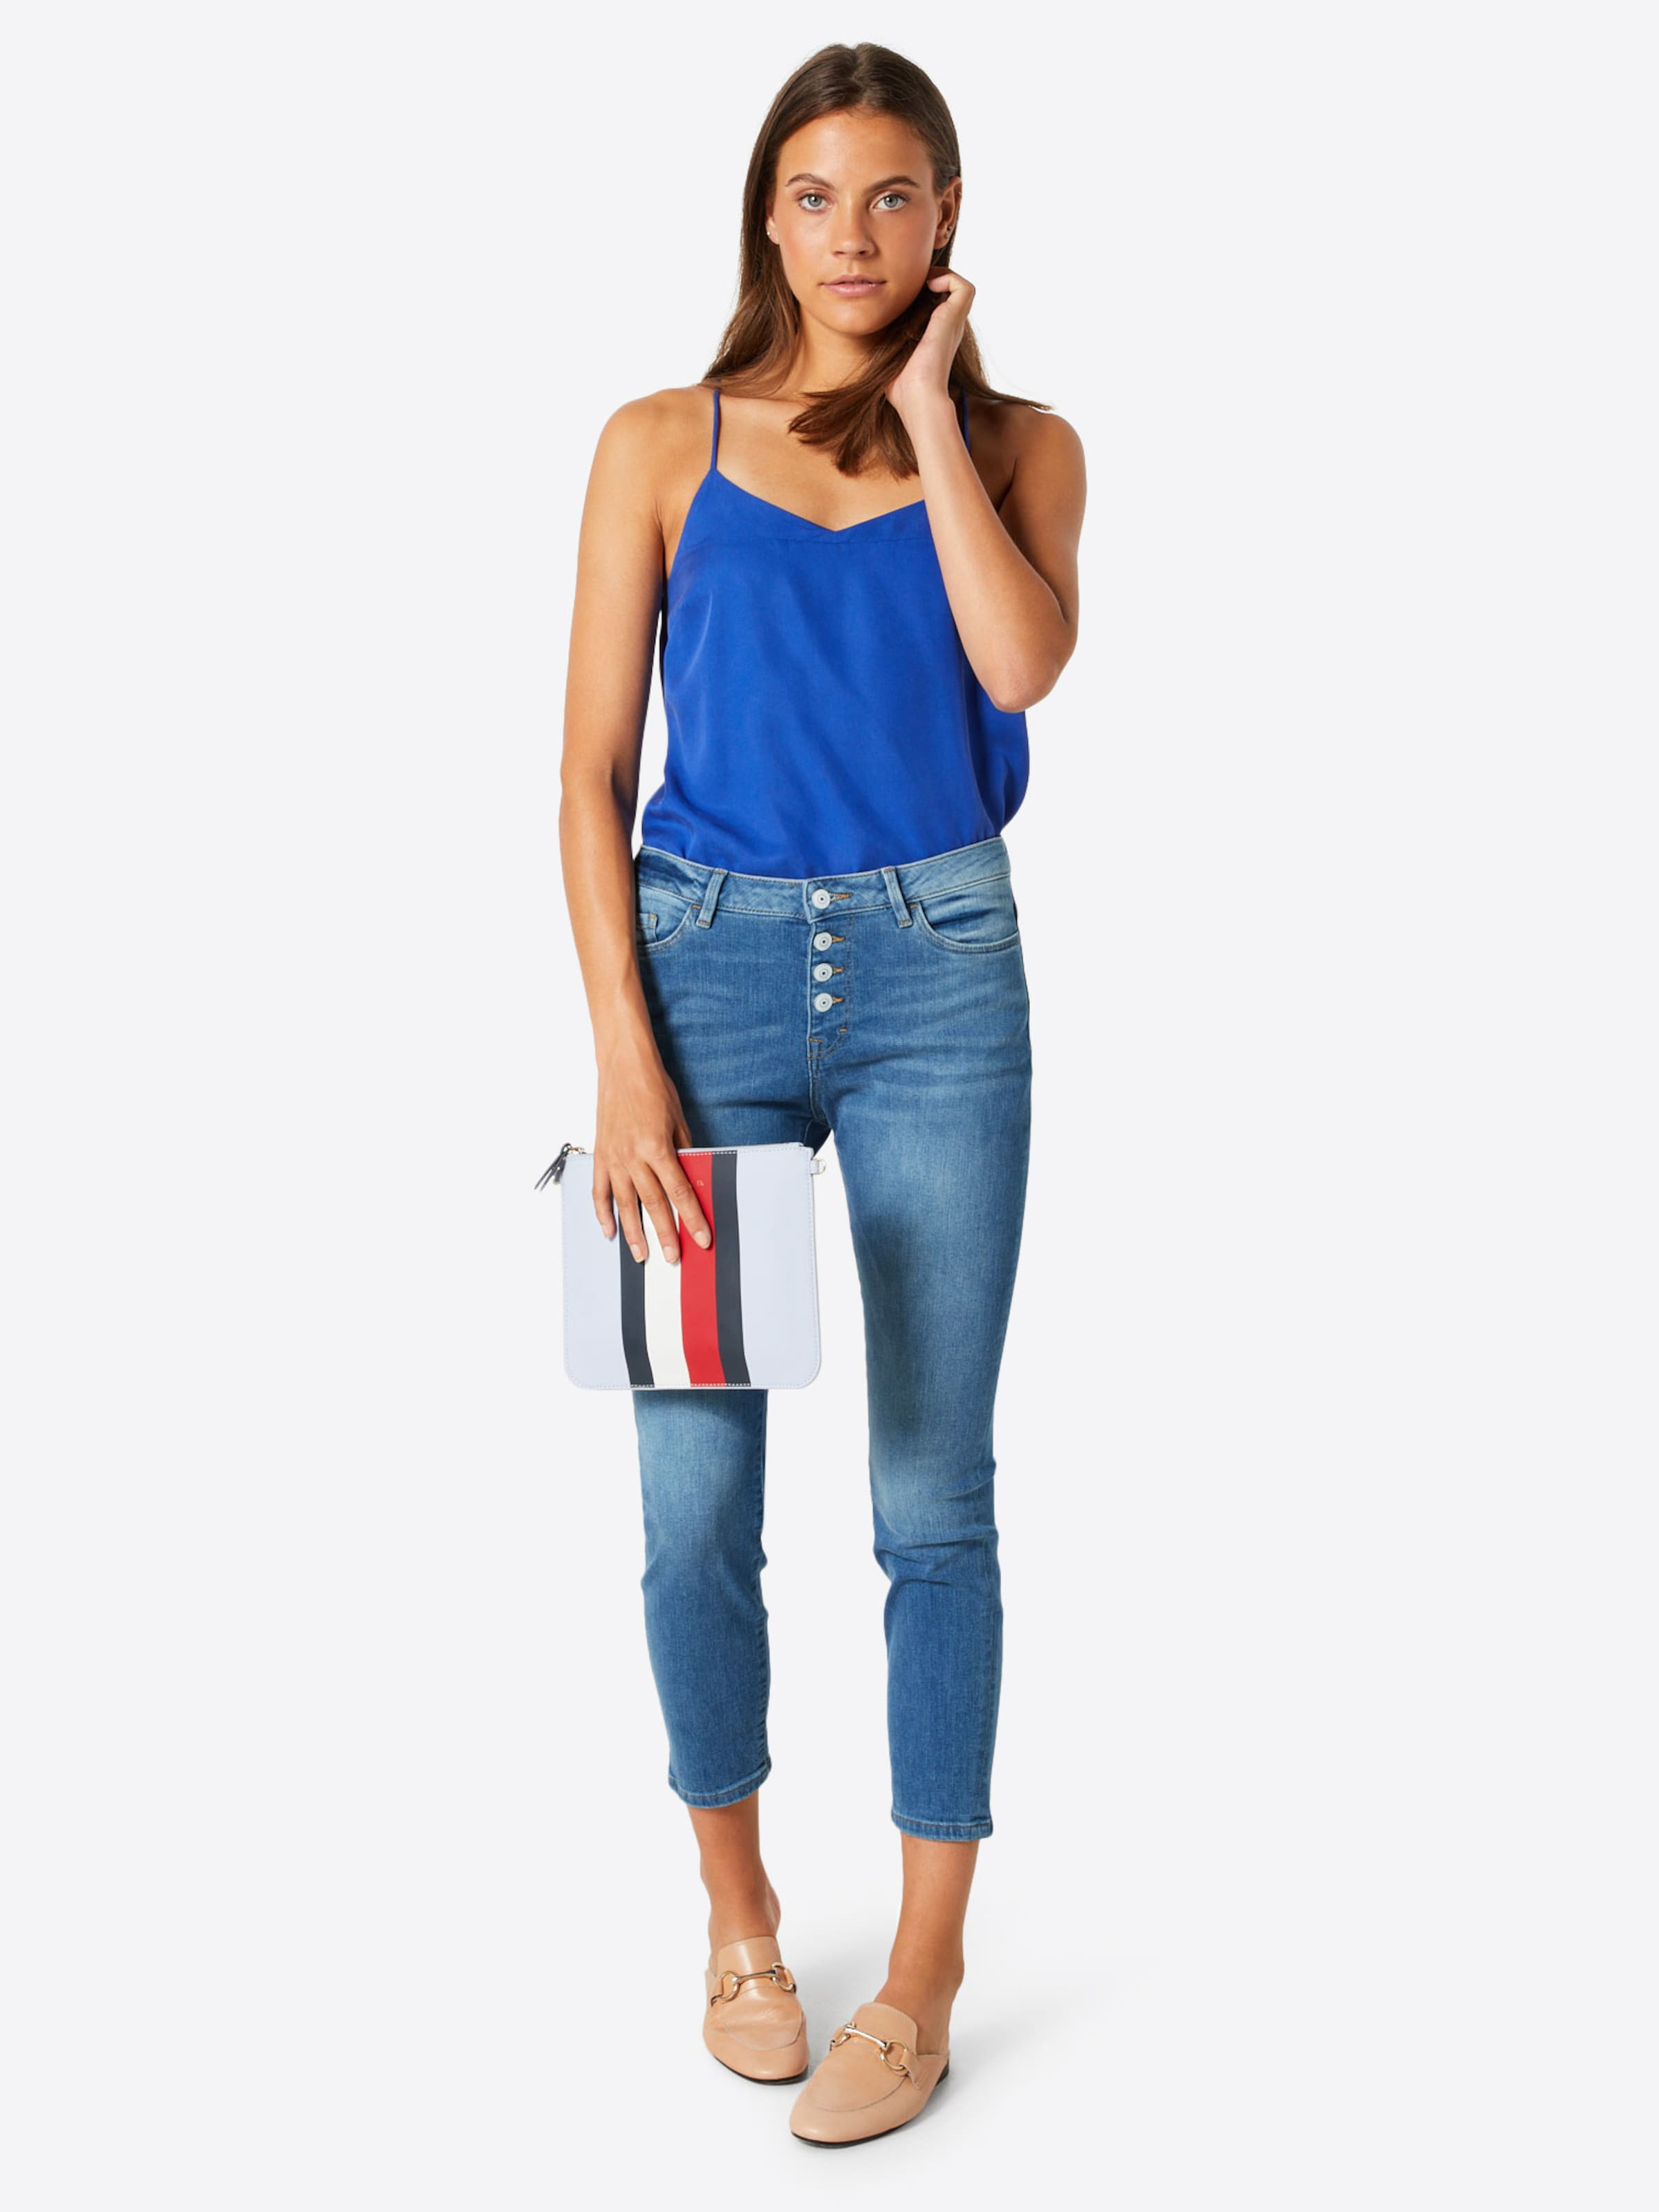 In Denim' Jeans Cropped Blue By Esprit 'skin Pants Denim Edc n0vwN8m